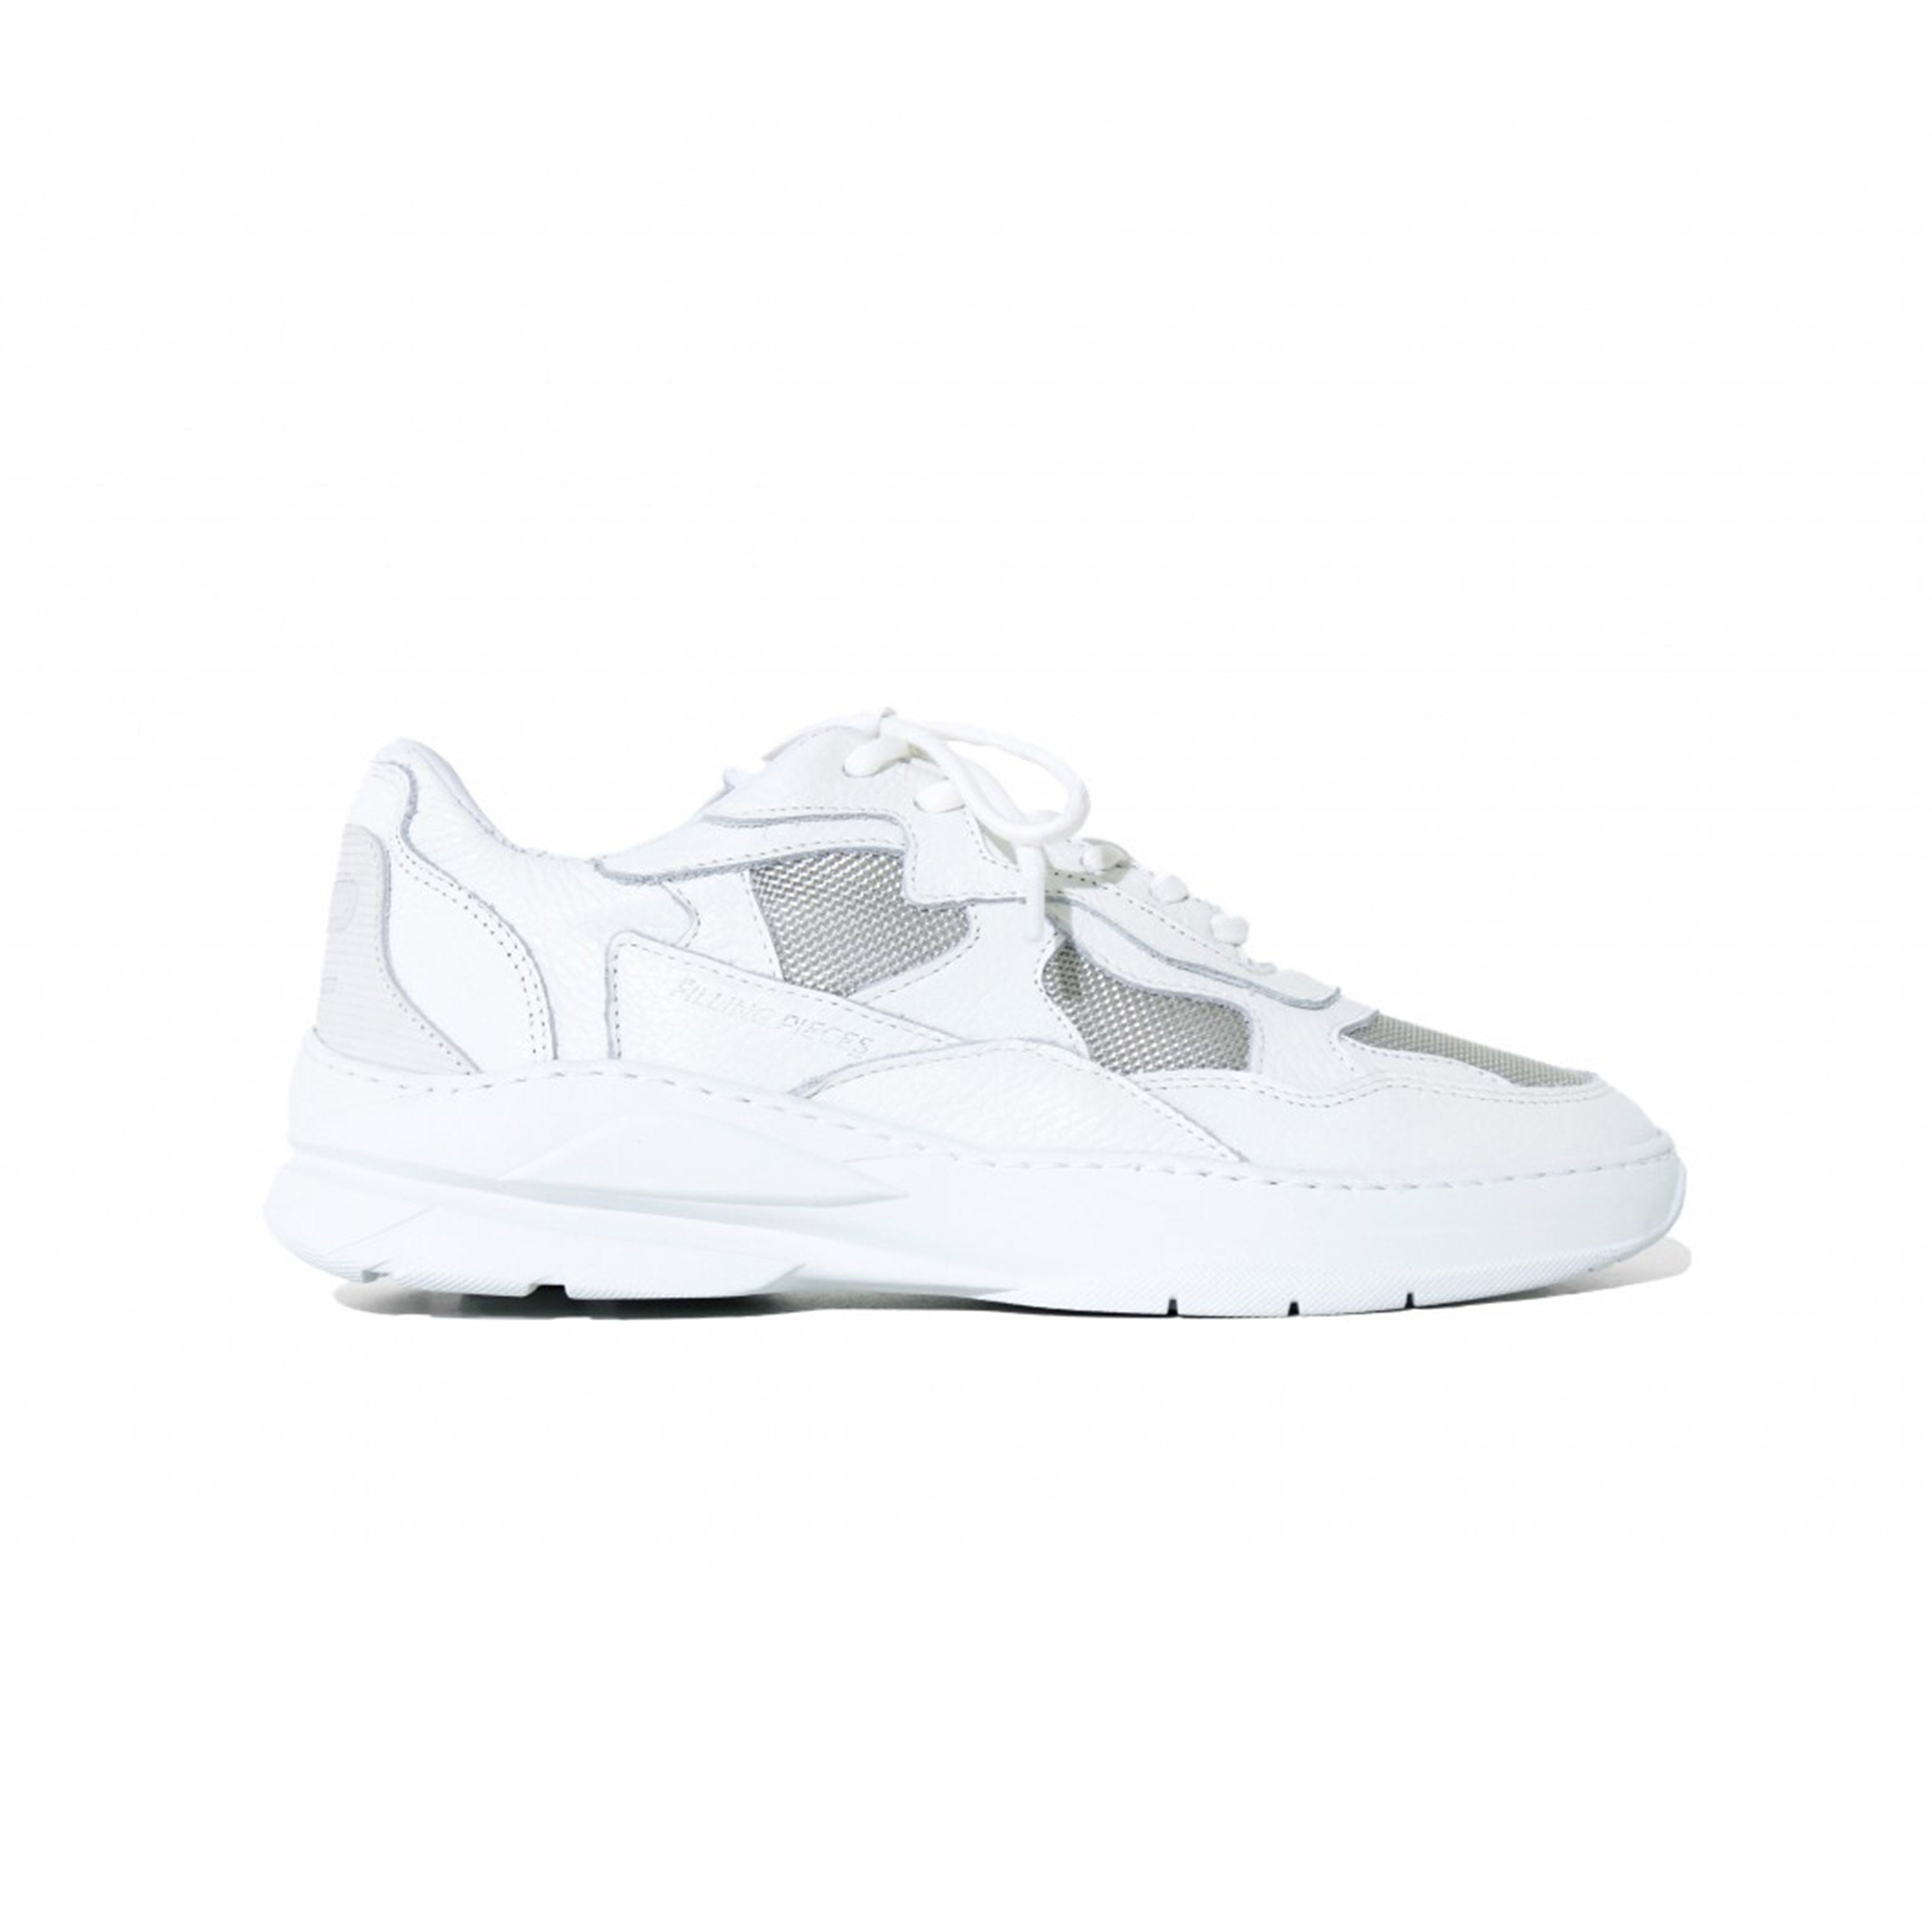 White Low Fade Cosmo Mix Sneakers Filling Pieces Outlet For Cheap Sale Online Cheap Really Cheap Great Deals For Sale oWlA3ZbTuu